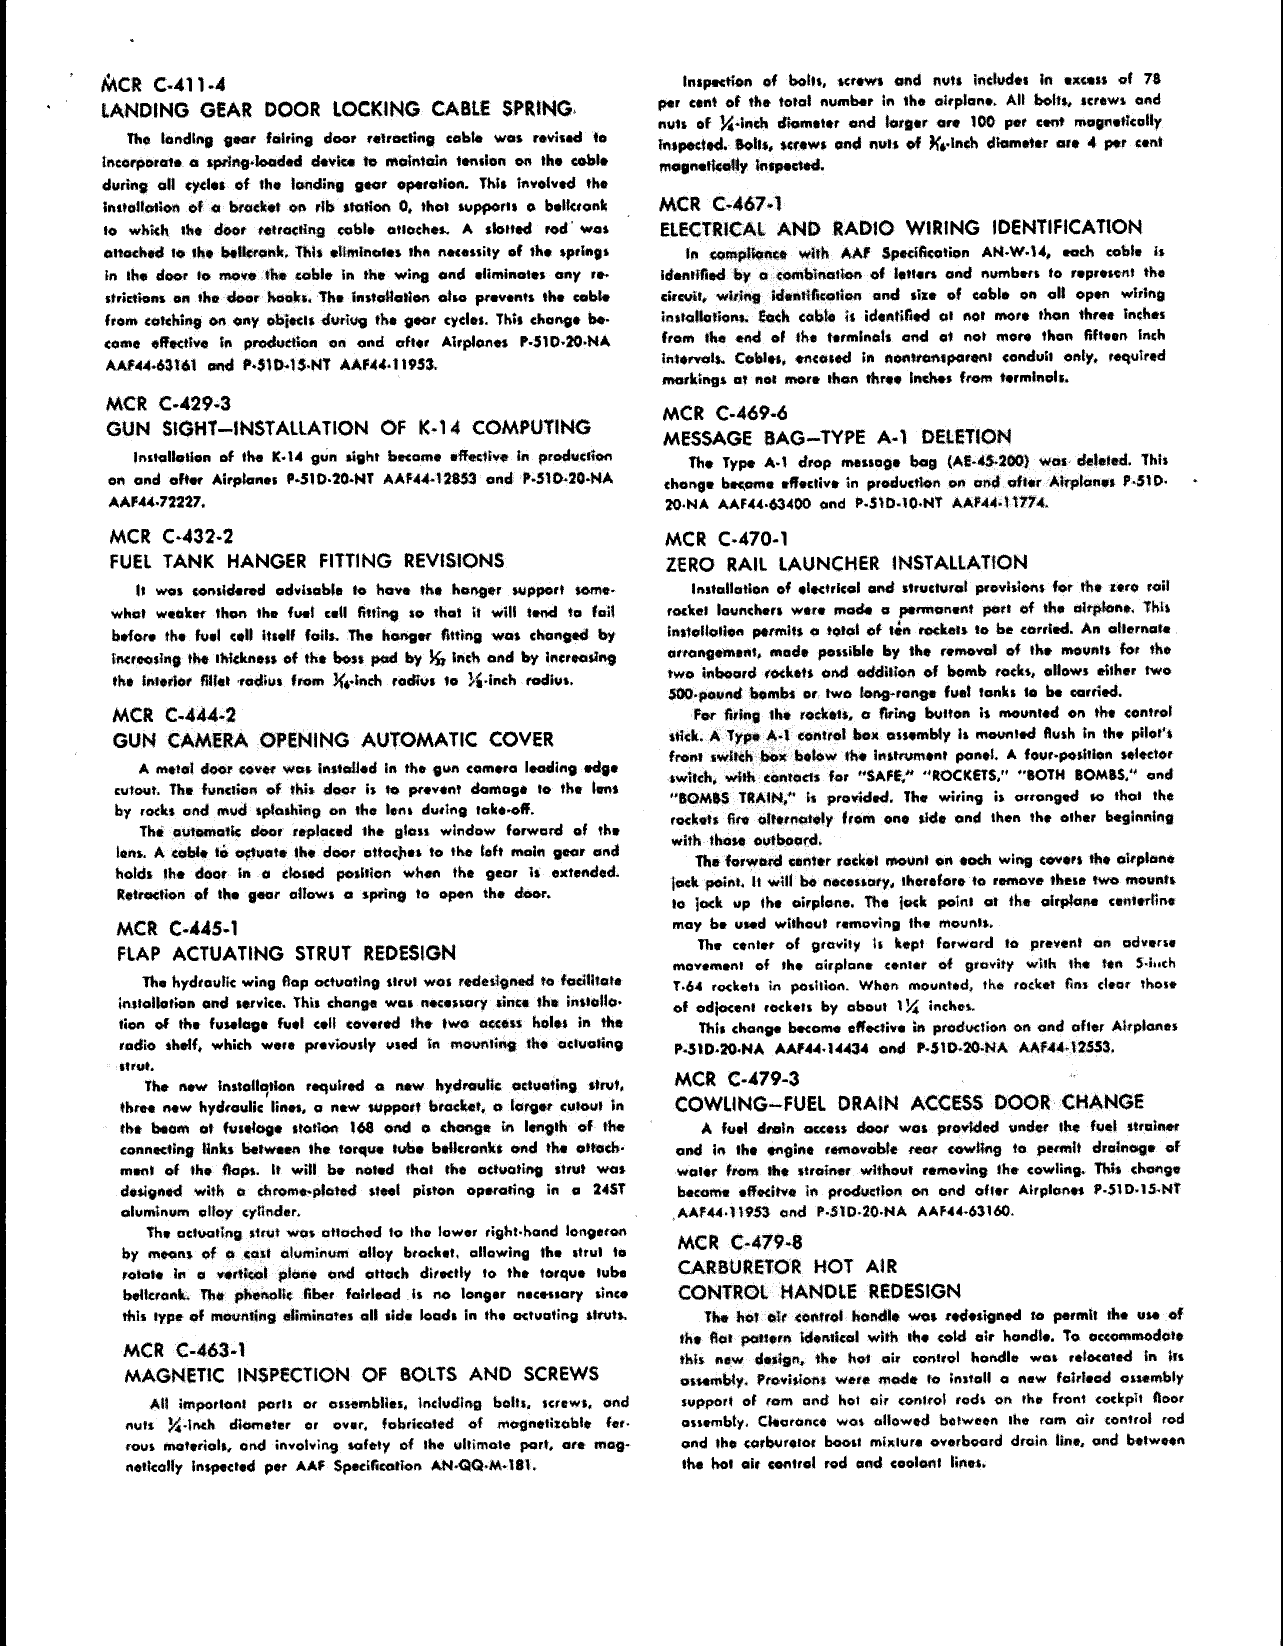 Sample page 2 from AirCorps Library document: Summary of Changes - Block Description for P-51D-20 Airplanes